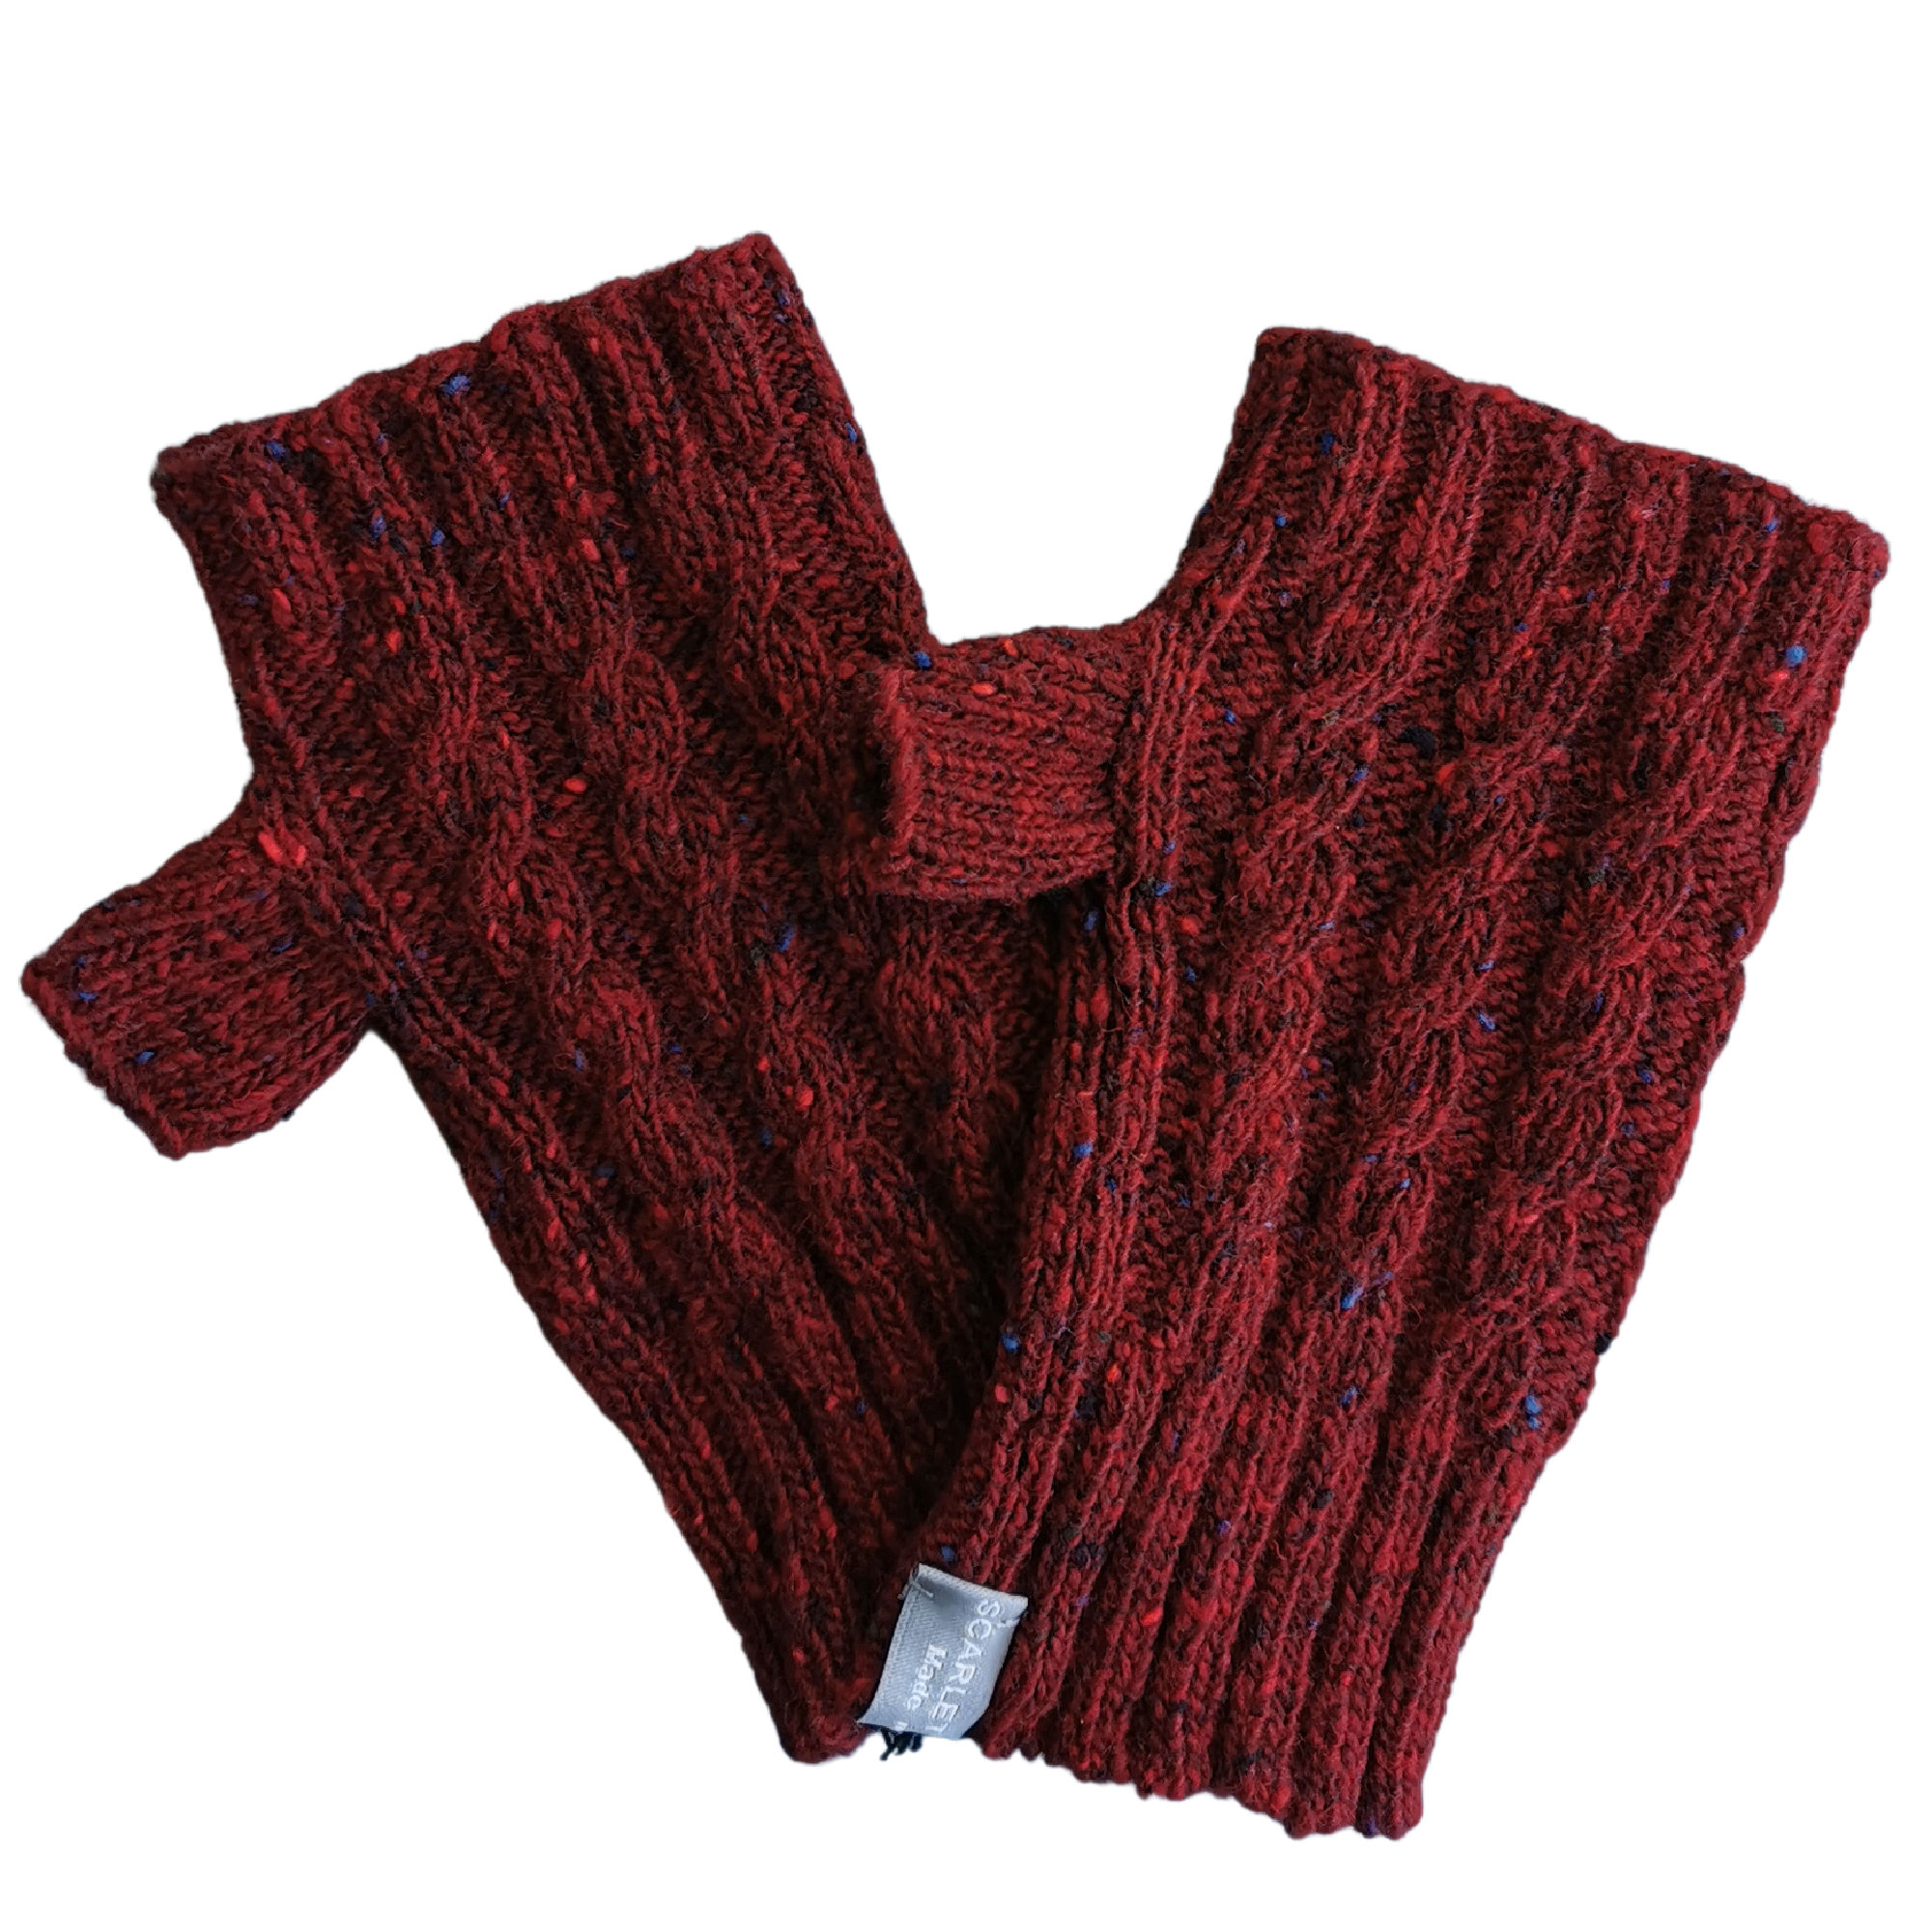 Cable Fingerless Gloves in Merino Wool by Scarlet Knitwear